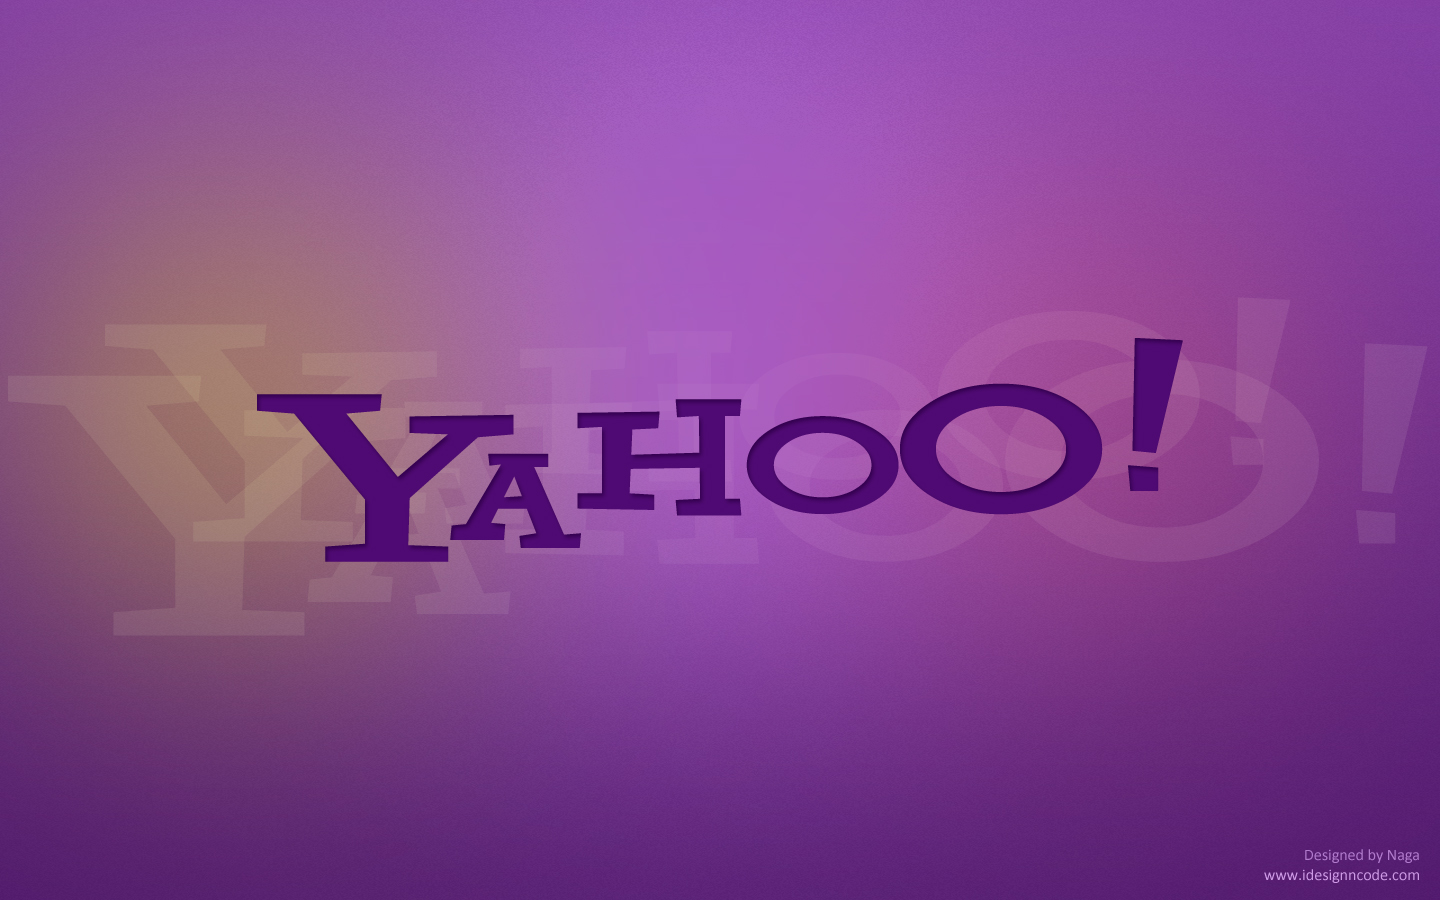 Yahoo Screensavers and Wallpaper 1440x900